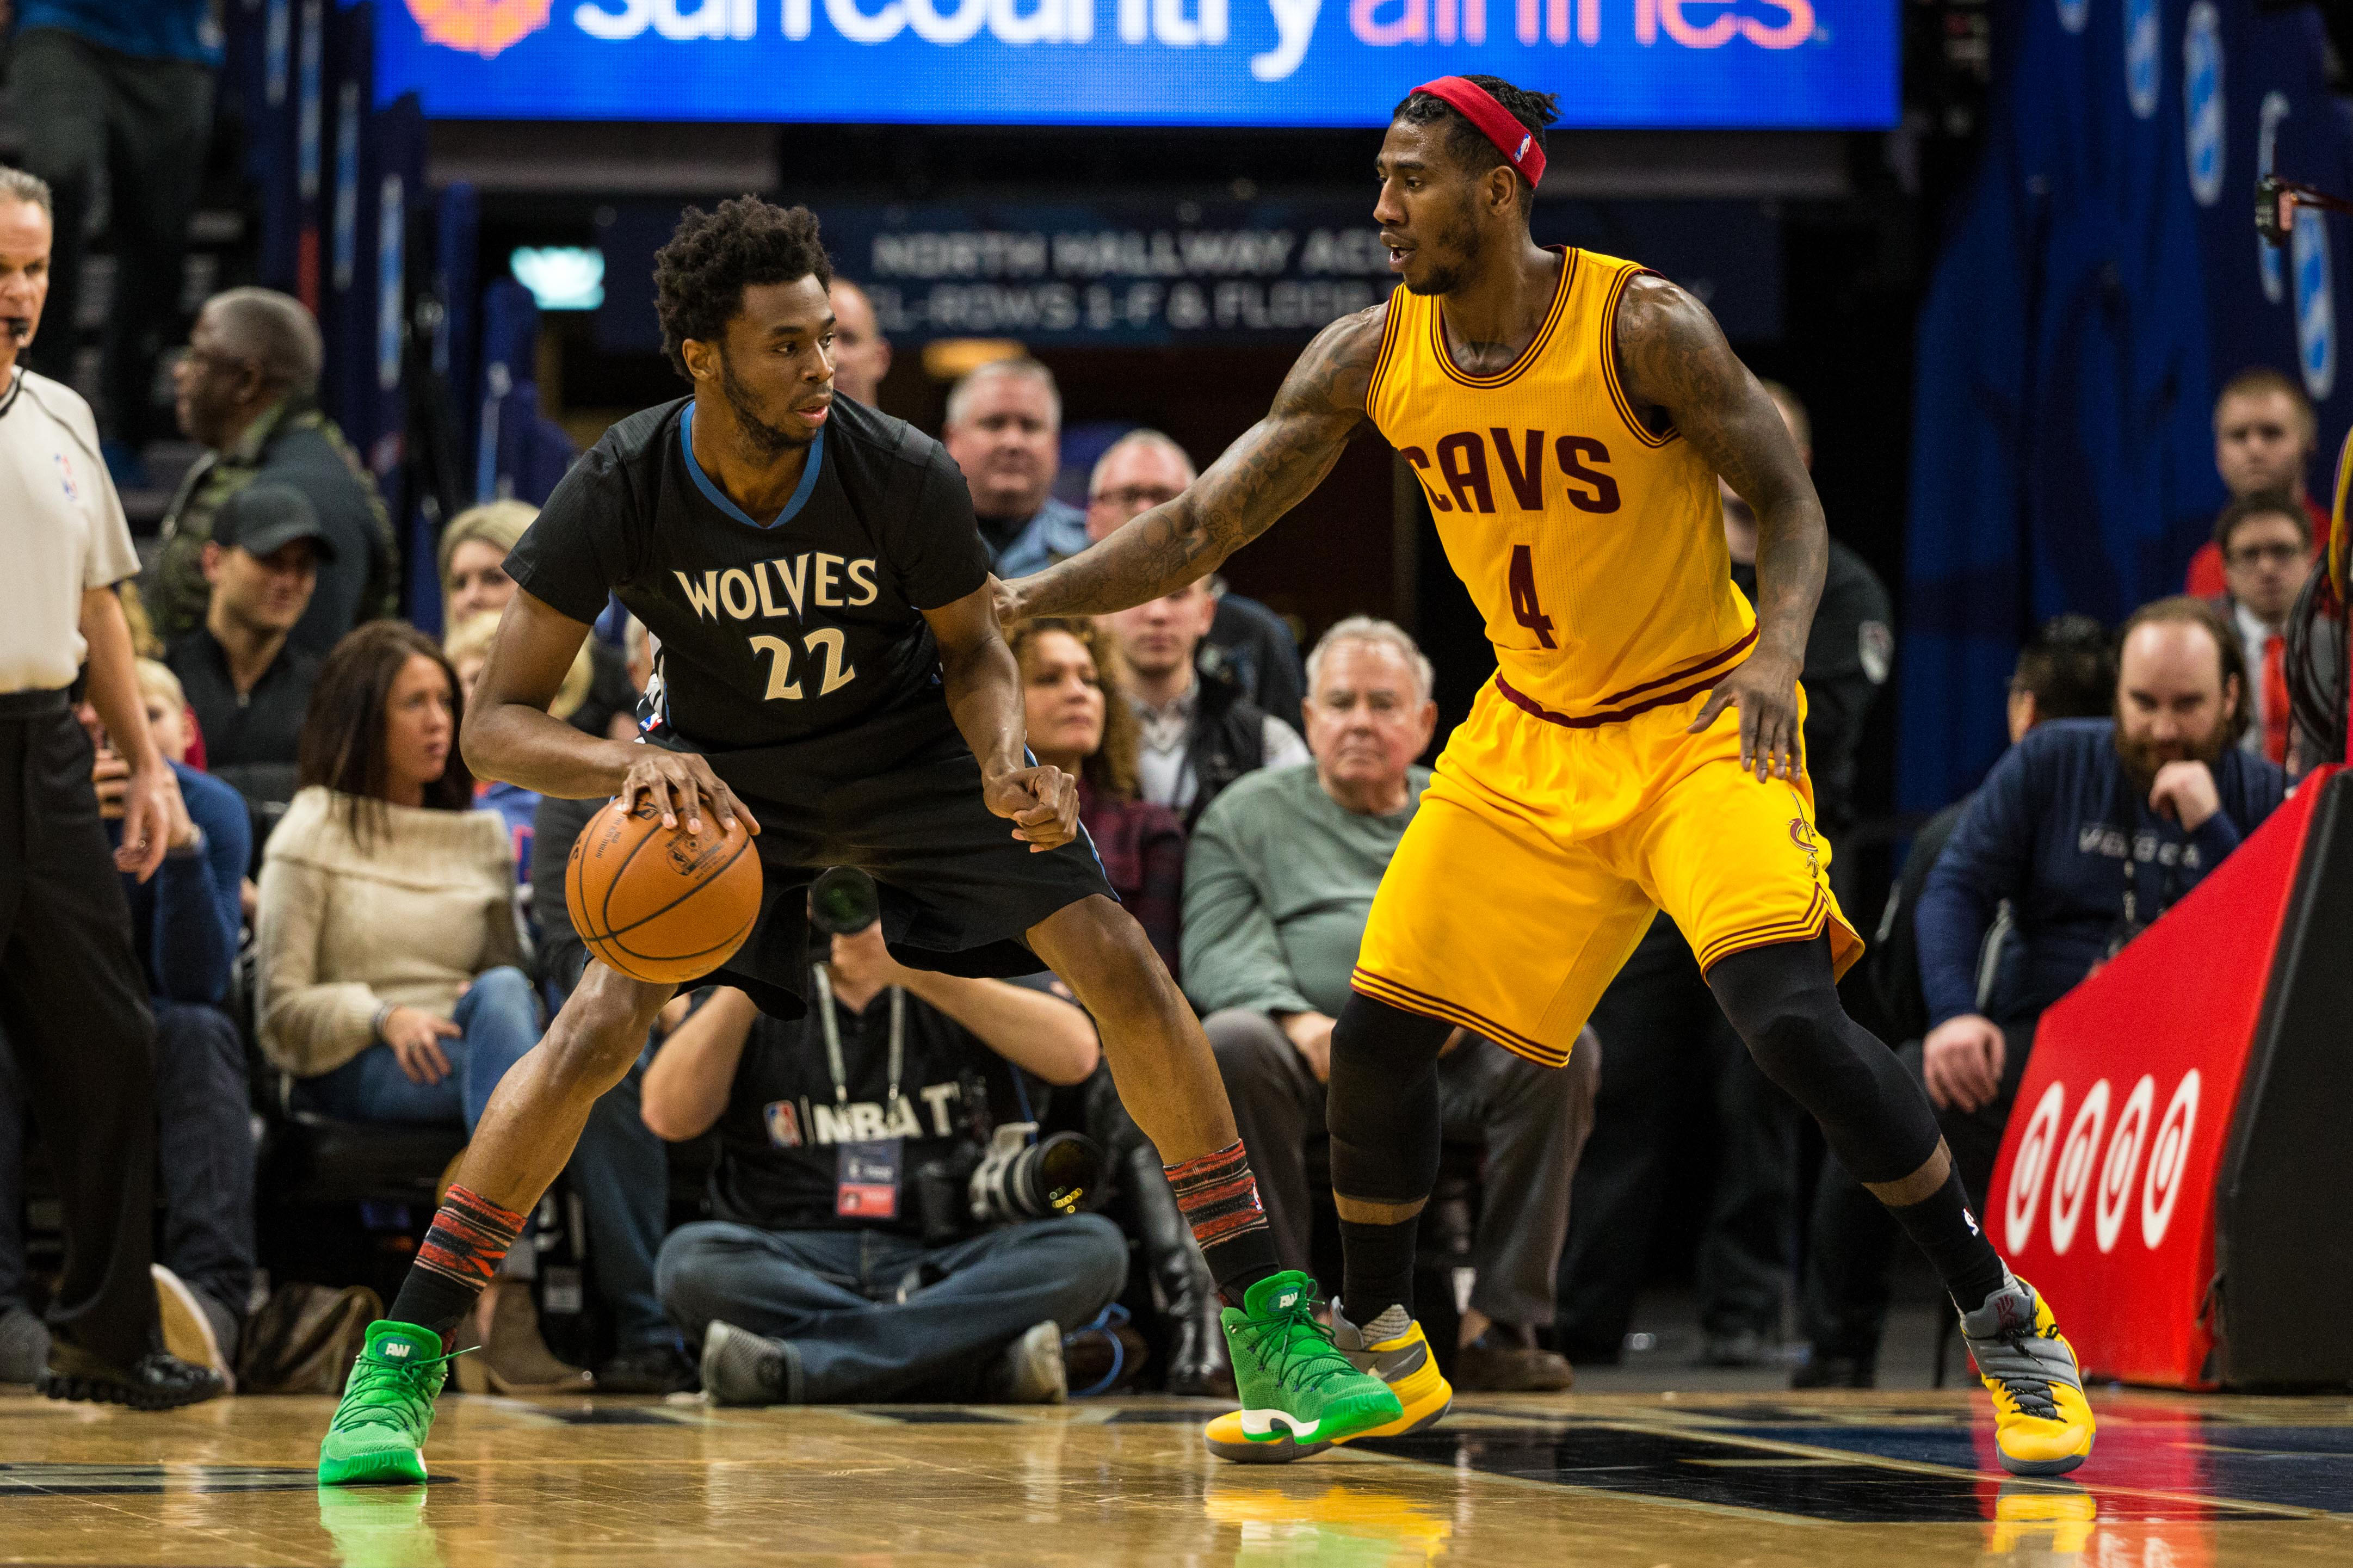 9878093-nba-cleveland-cavaliers-at-minnesota-timberwolves